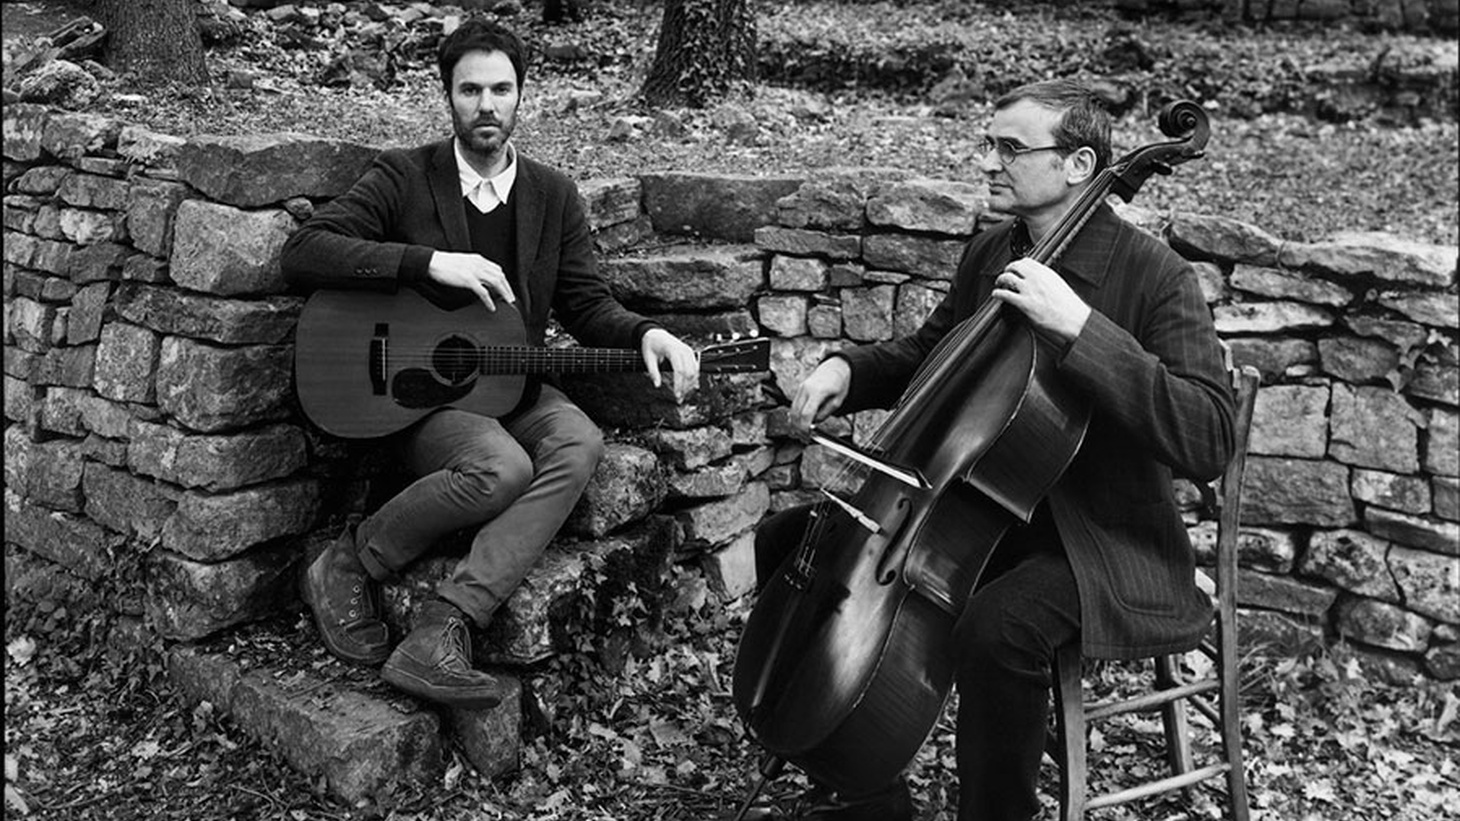 Piers Faccini, a gifted songwriter and producer, turned to cellist Vincent Ségal for an intimate recording of voice, cello and acoustic guitar. After a 25-year friendship they have finally been able to work together.